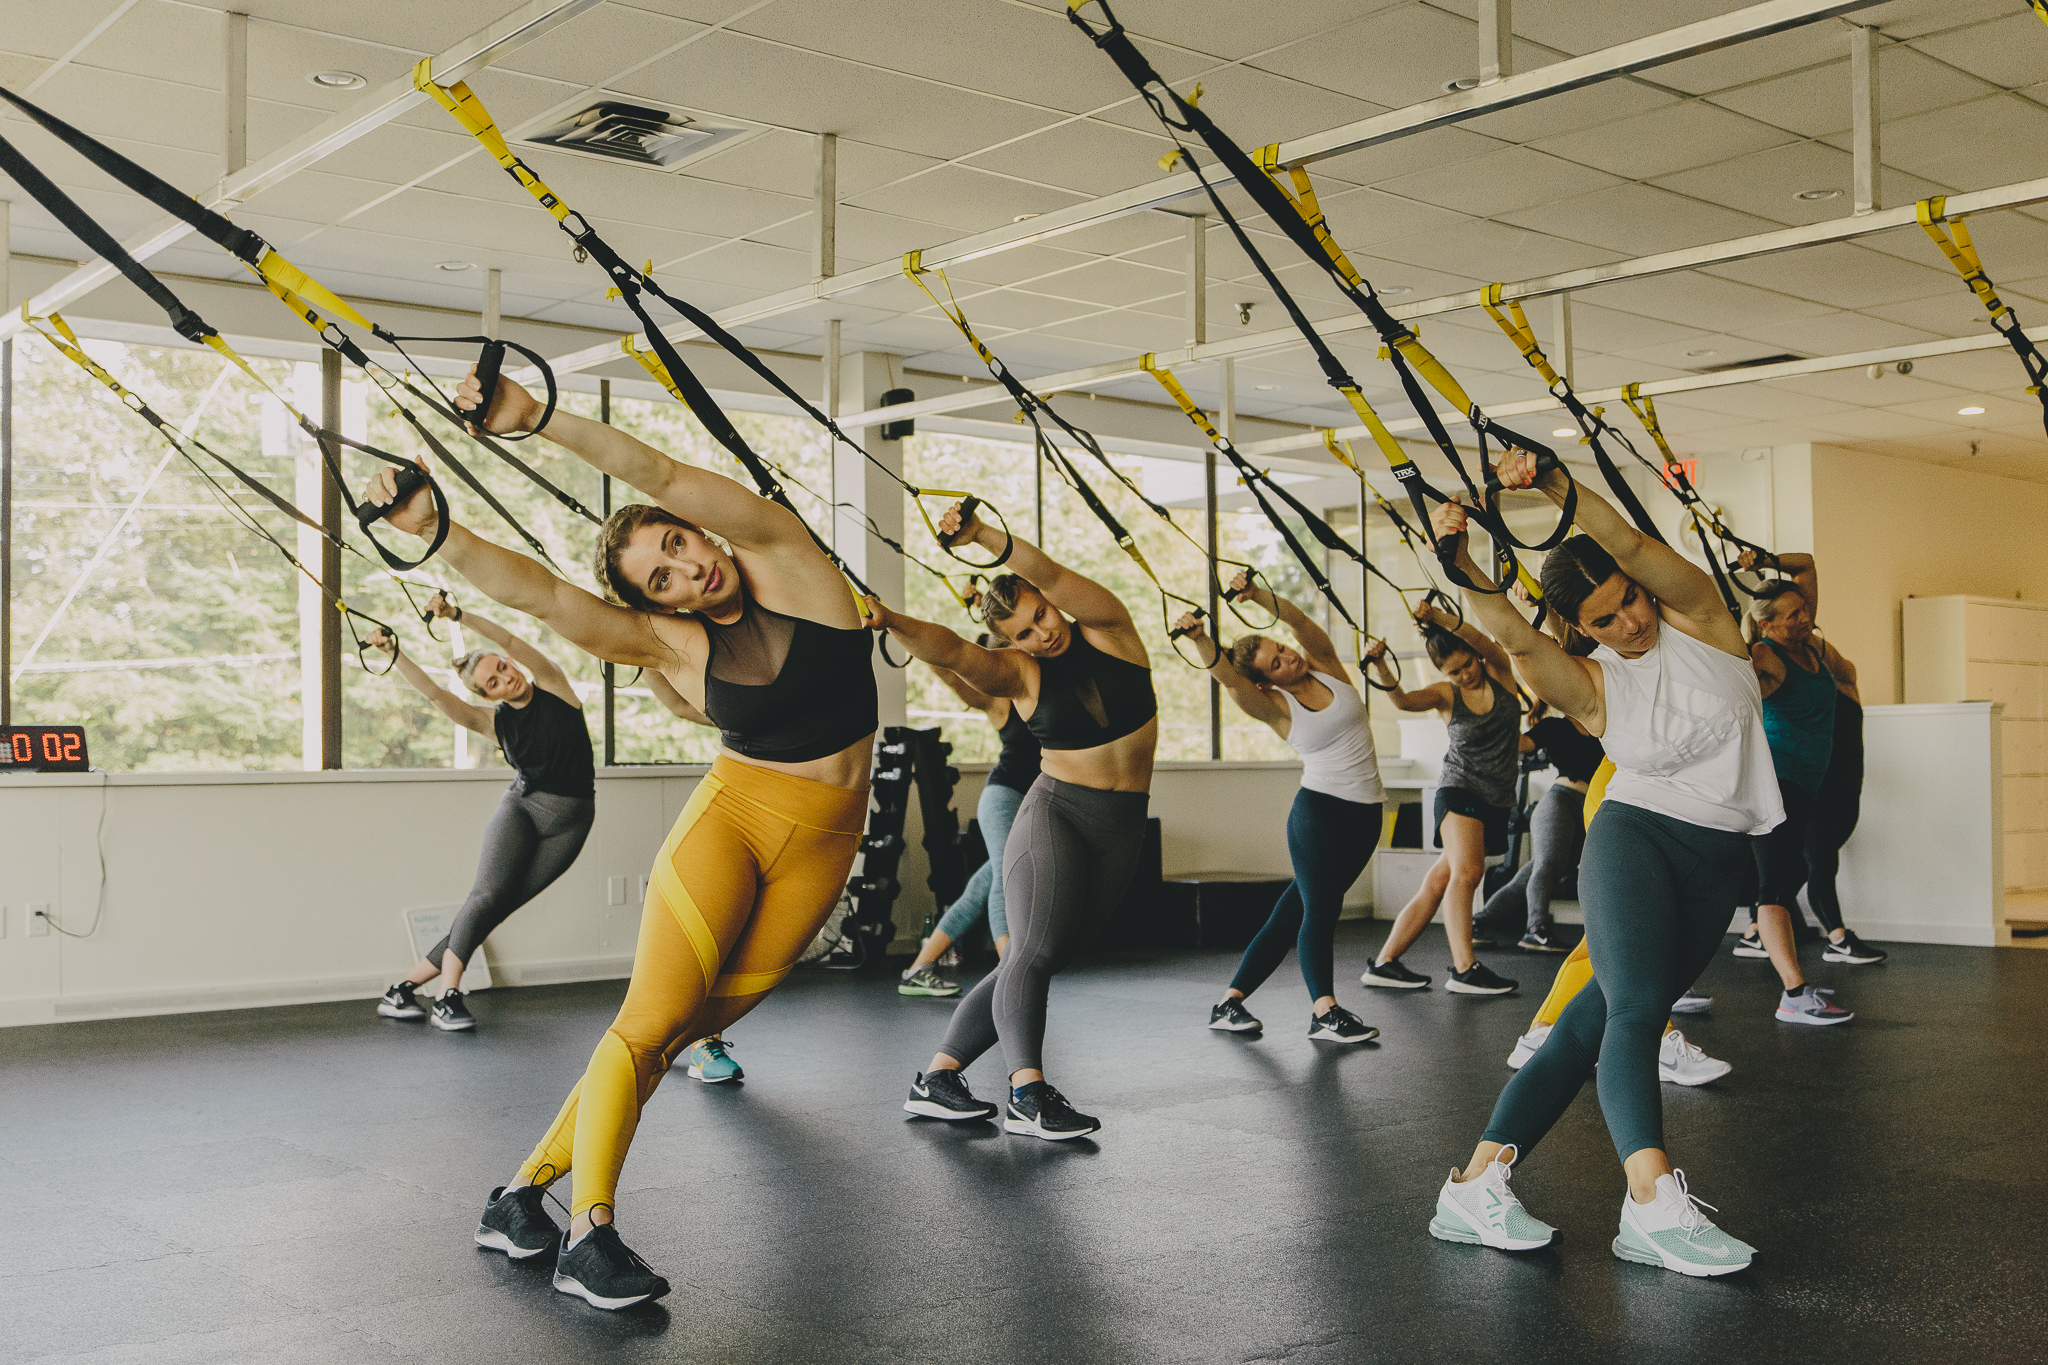 Top 3 TRX Exercises to increase mobility